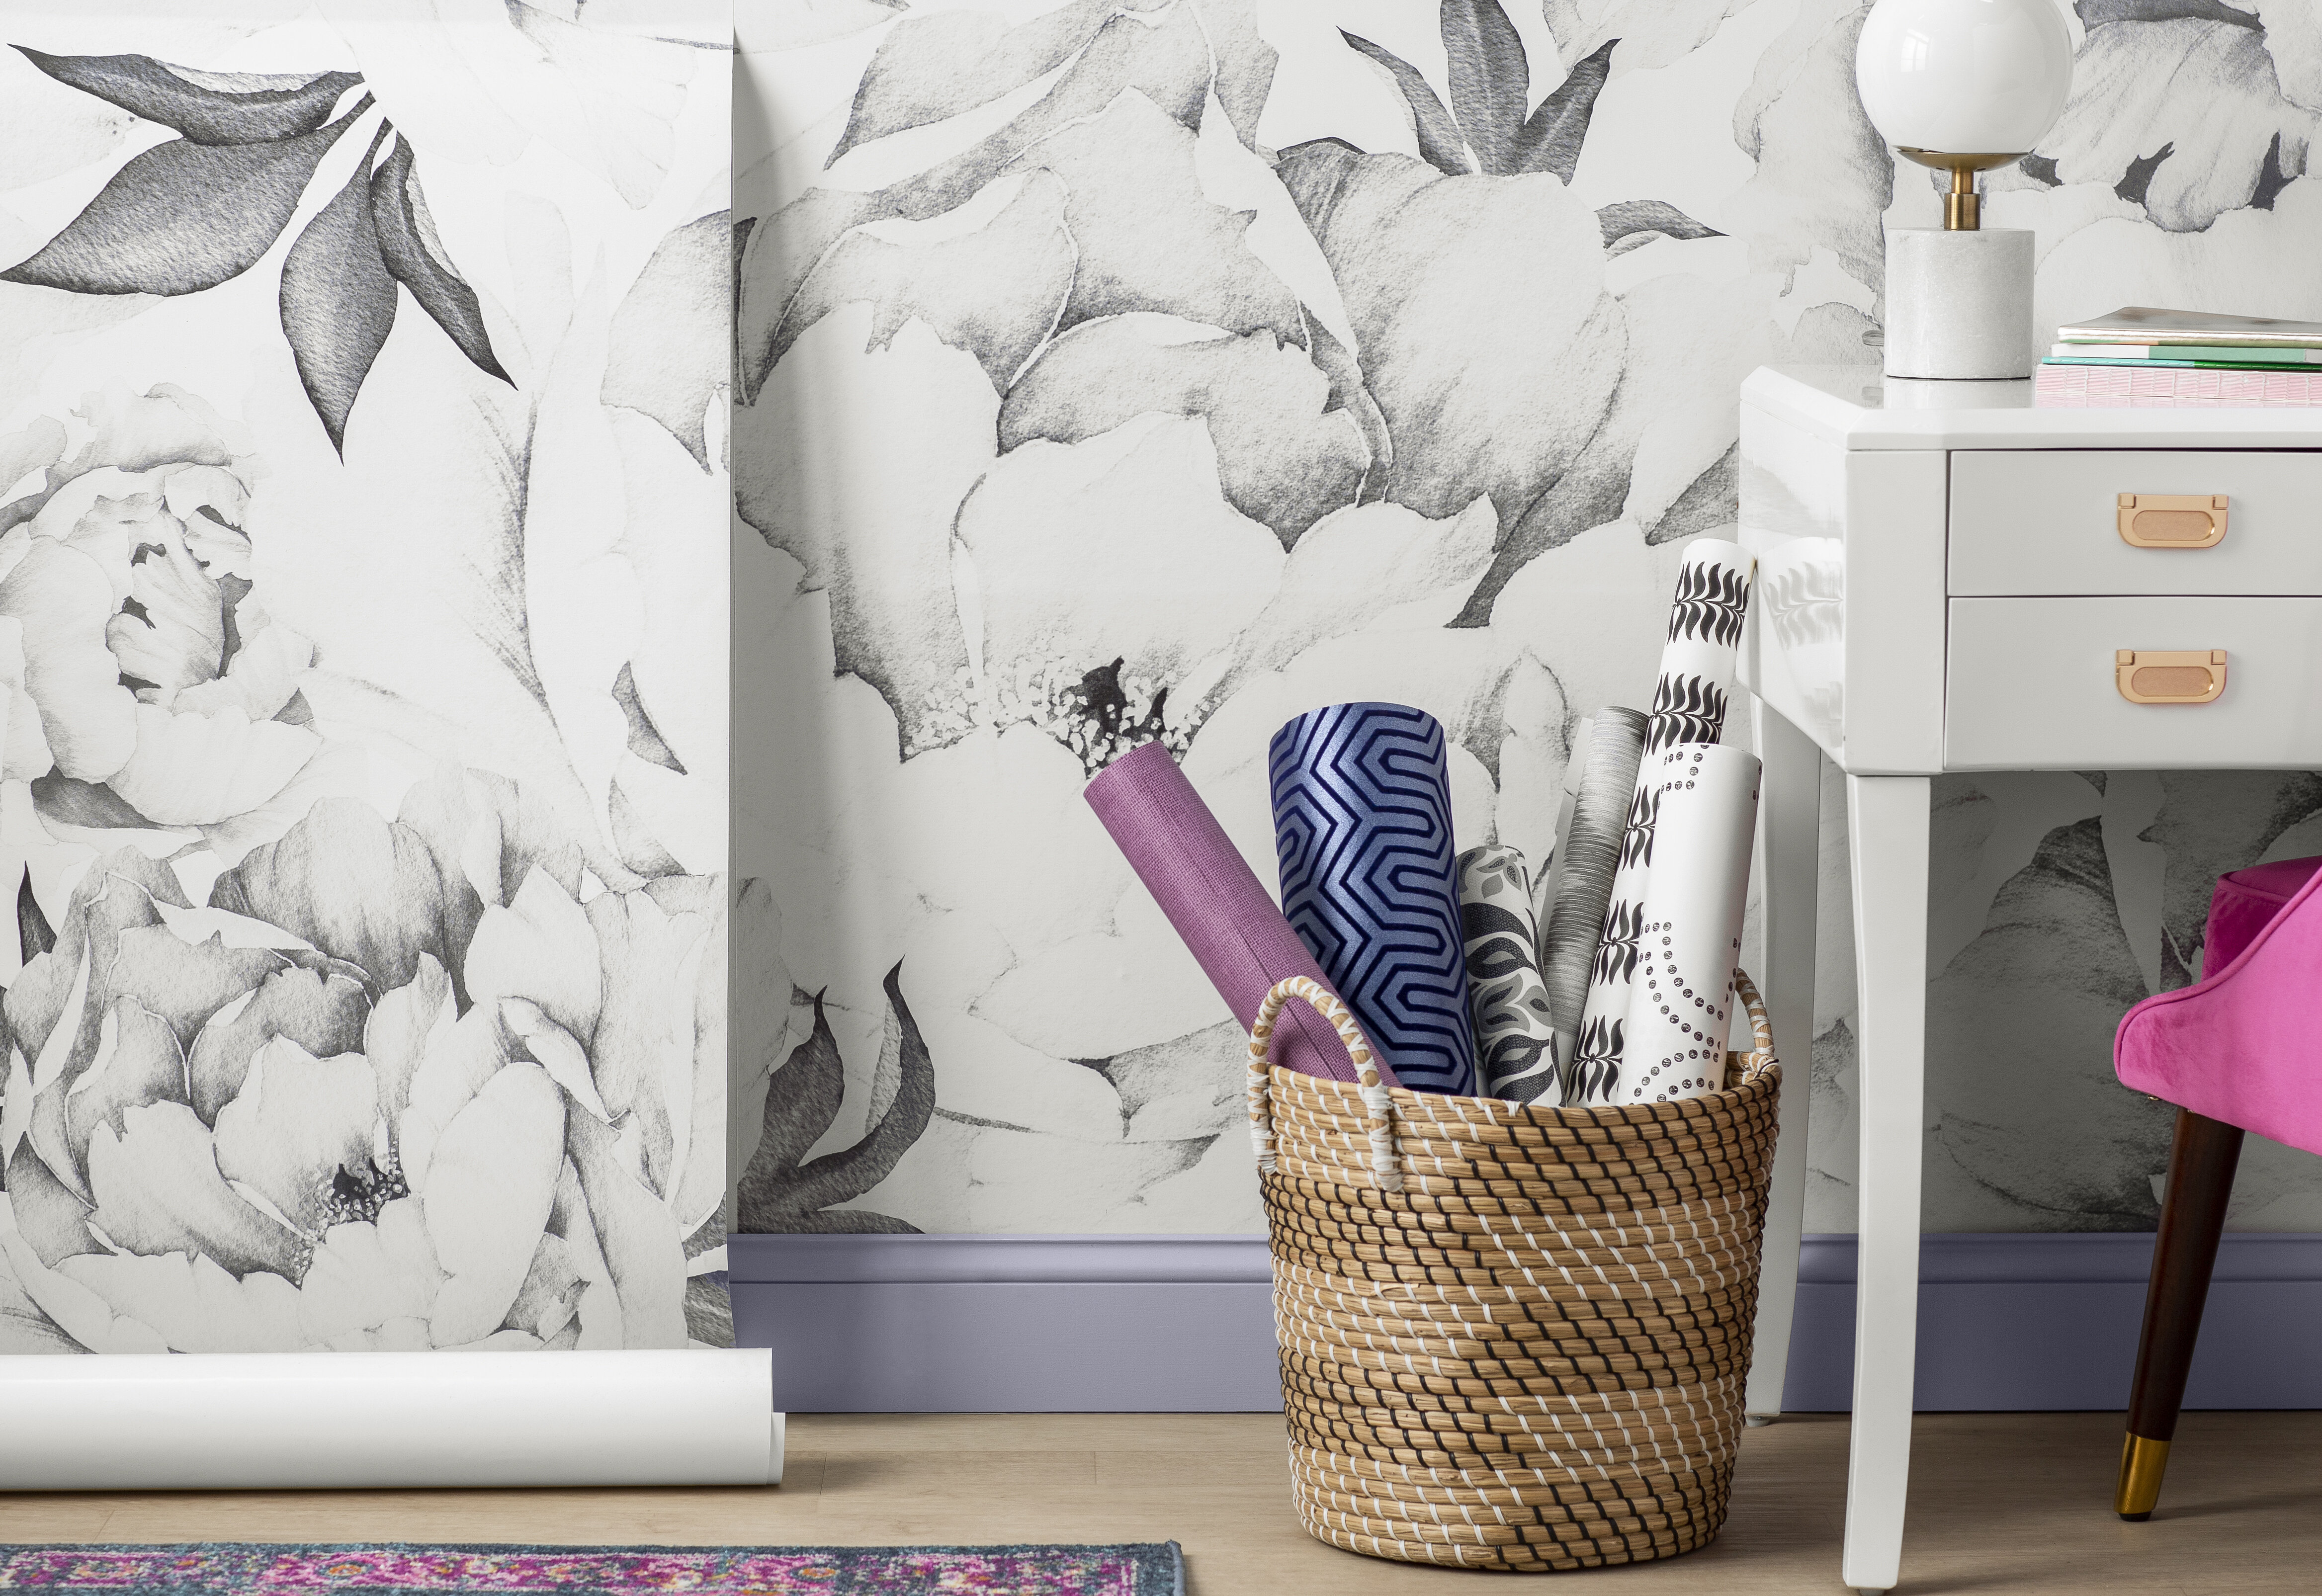 Wallpapering 101 Wallpaper Installation Wayfair